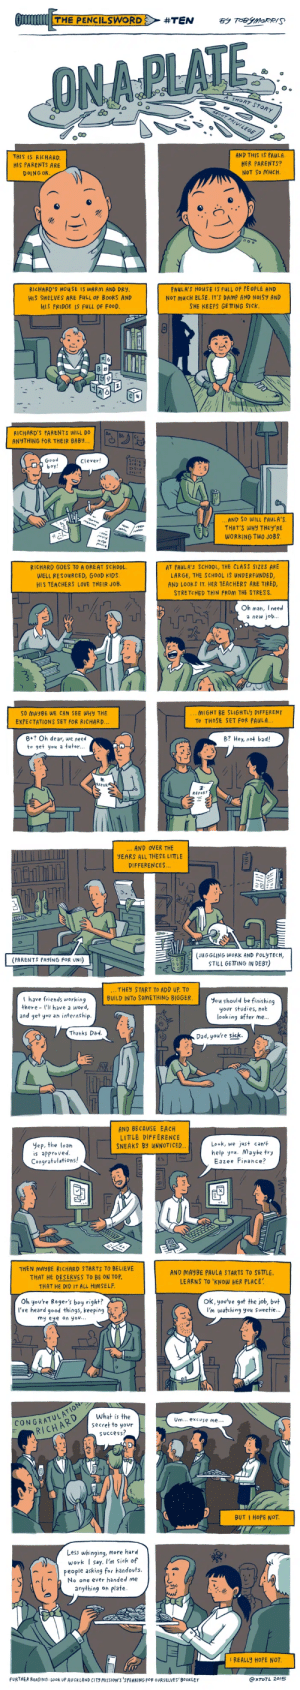 One of the best explanations of privilege I've ever seen: THE PENCILSWORD  #TEN  By TBYMORRIS  ONAPLATE  SHORT STORY  ABOUT PRIVILEGE  AND THIS IS PAULA.  HER PARENTS?  NOT SO MUCH  THIS IS RICHARD.  HIS PARENTS ARE  DOING OK  RICHARD'S HOUSE IS WARM AND DRY  PAULA'S HOUSE IS FULL OF PEOPLE AND  NOT MUCH ELSE. IT'S DAMP AND NOISY AND  SHE KEEPS GETTING SICK  HIS SHELVES ARE FULL OF BOokS AND  HIS FRIDGE IS FULL OF FOOD.  RICHARD'S PARENTS WILL DO  ANYTHING FOR THEIR BABY...  Good  boy!  1-3:6  Clever!  ..AND SO WILL PAULA'S  THAT'S WHY THEY'RE  WORKING TWO JOBS  RICHARD GOES TO A GREAT SCHOOL.  AT PAULA'S SCHOOL, THE CLASS SIZES ARE  WELL RESOURCED, GOOD KIDS.  HIS TEACHERS LOVE THEIR JOB.  LARGE, THE SCHOOL IS UNDERFUNDED,  AND LOOKS IT. HER TEACHERS ARE TIRED,  STRETCHED THIN FROM THE STRES S  Oh man, Ineed  a new job...  MIGHT BE SLIGHTLY DIFFERENT  To THOSE SET FOR PAULA...  SO MAYBE WE CAN SEE WHy THE  EXPECTATIONS SET FOR RICHARD...  B+? Oh dear, we need  B? Hey, not bad!  to get you a tutor...  REPOR  REPORT  ... AND OVER THE  YEARS ALL THESE LITTLE  DIFFERENCES..  (JUGGLING WORK AND POLYTECH,  STILL GETTING IN DEBT)  (PARENTS PAYING FOR UNI)  THEY START TO ADD UP. TO  BUILD INTO SOMETHING BIGGER.  have friends working  there l'l have a word,  |and get you an internship  You should be finishing  your studies, hot  looking after me...  Thanks Dad.  Dad, you're sick.  AND BECAUSE EACH  LITTLE DIFFERENCE  NEAKS BY UNNOTICED  Look, we just can't  help you. Maybe try  Eazee Finance?  yep, the loan  is approved.  Congratulations!  THEN MAYBE RICHARD STARTS TO BELIEVE  AND MAYBE PAULA STARTS TO SETLE  LEARNS TO 'KNOW HER PLACE  THAT HE DESERVES TO BE ON TOP.  THAT HE DID IT ALL HIMSELF.  Oh you're Roger's boy right?  I've heard good things, keeping  ok,you've got the job, bvt  I'm watching you sweetie...  my eye on you...  CONGRATUL ATION  RICHARD  What is the  Um... excuse me  secret to your  sUccess?  BUT I HOPE NOT.  Less whinging, more hard  work I say. l'm sick